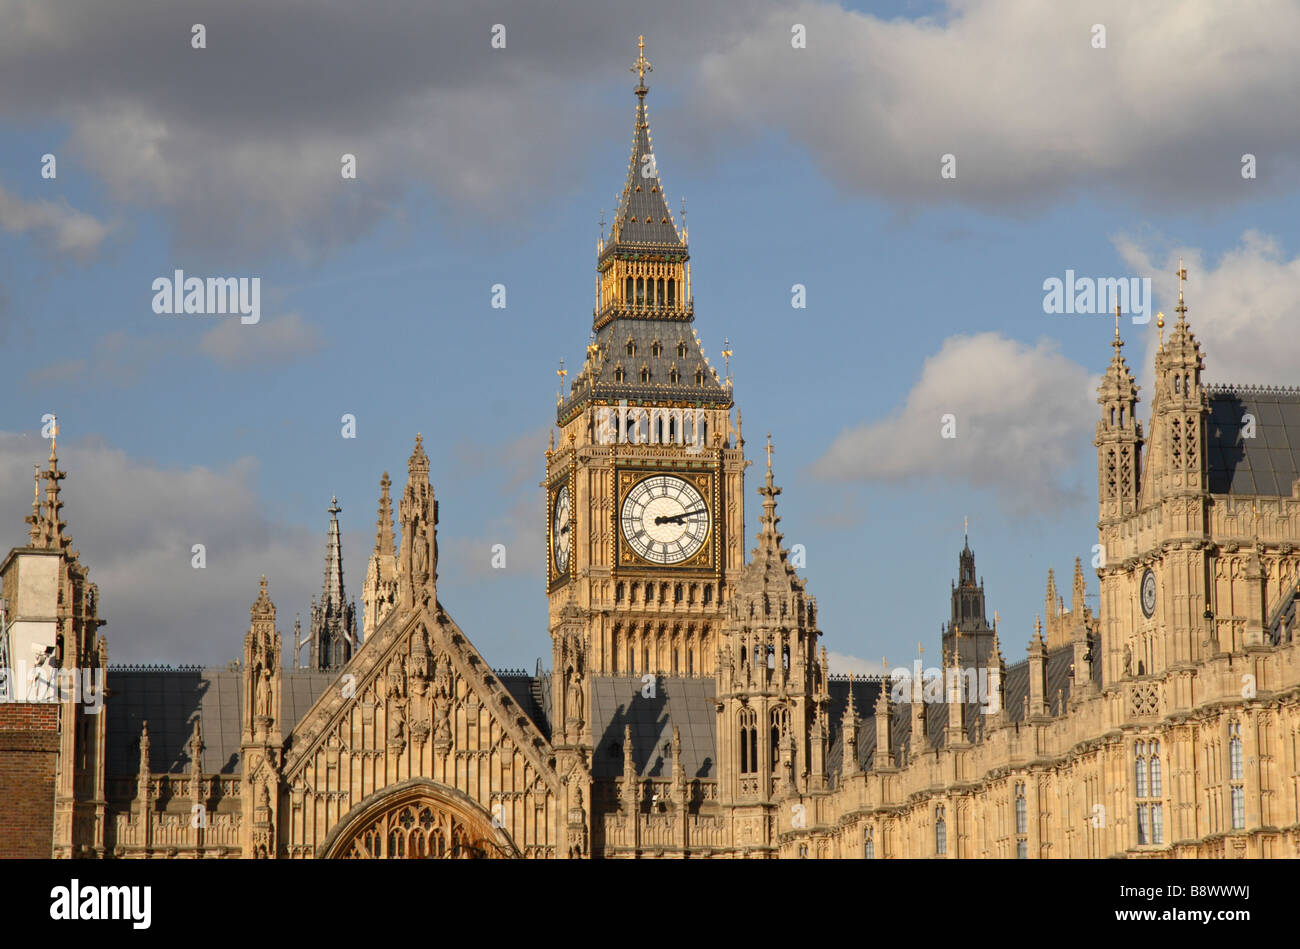 Elizabeth Tower or Big Ben and the Palace of Westminster in London England.  Mar 09 - Stock Image